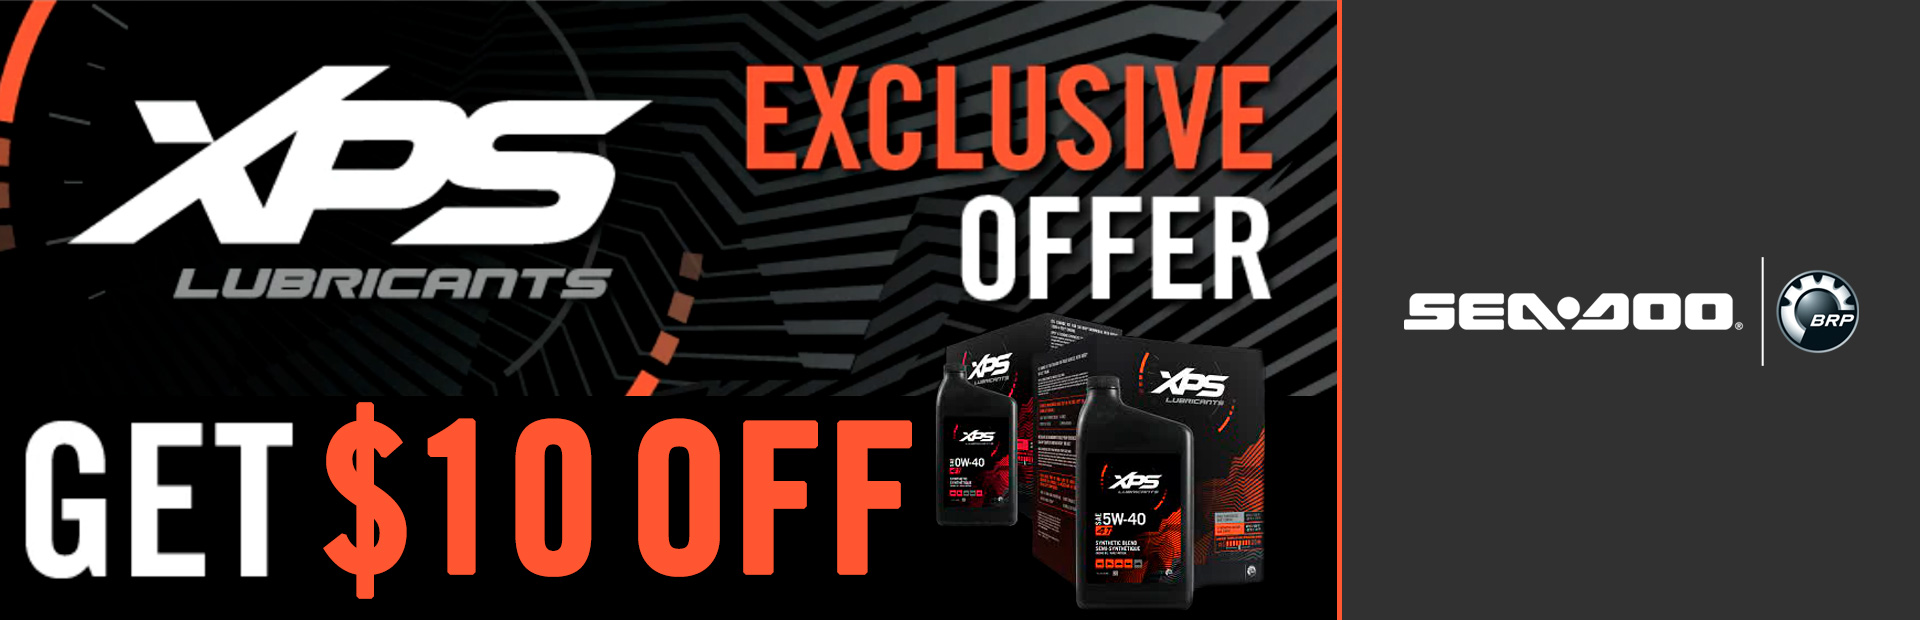 Sea-Doo: XPS Lubricants Exclusive Offer